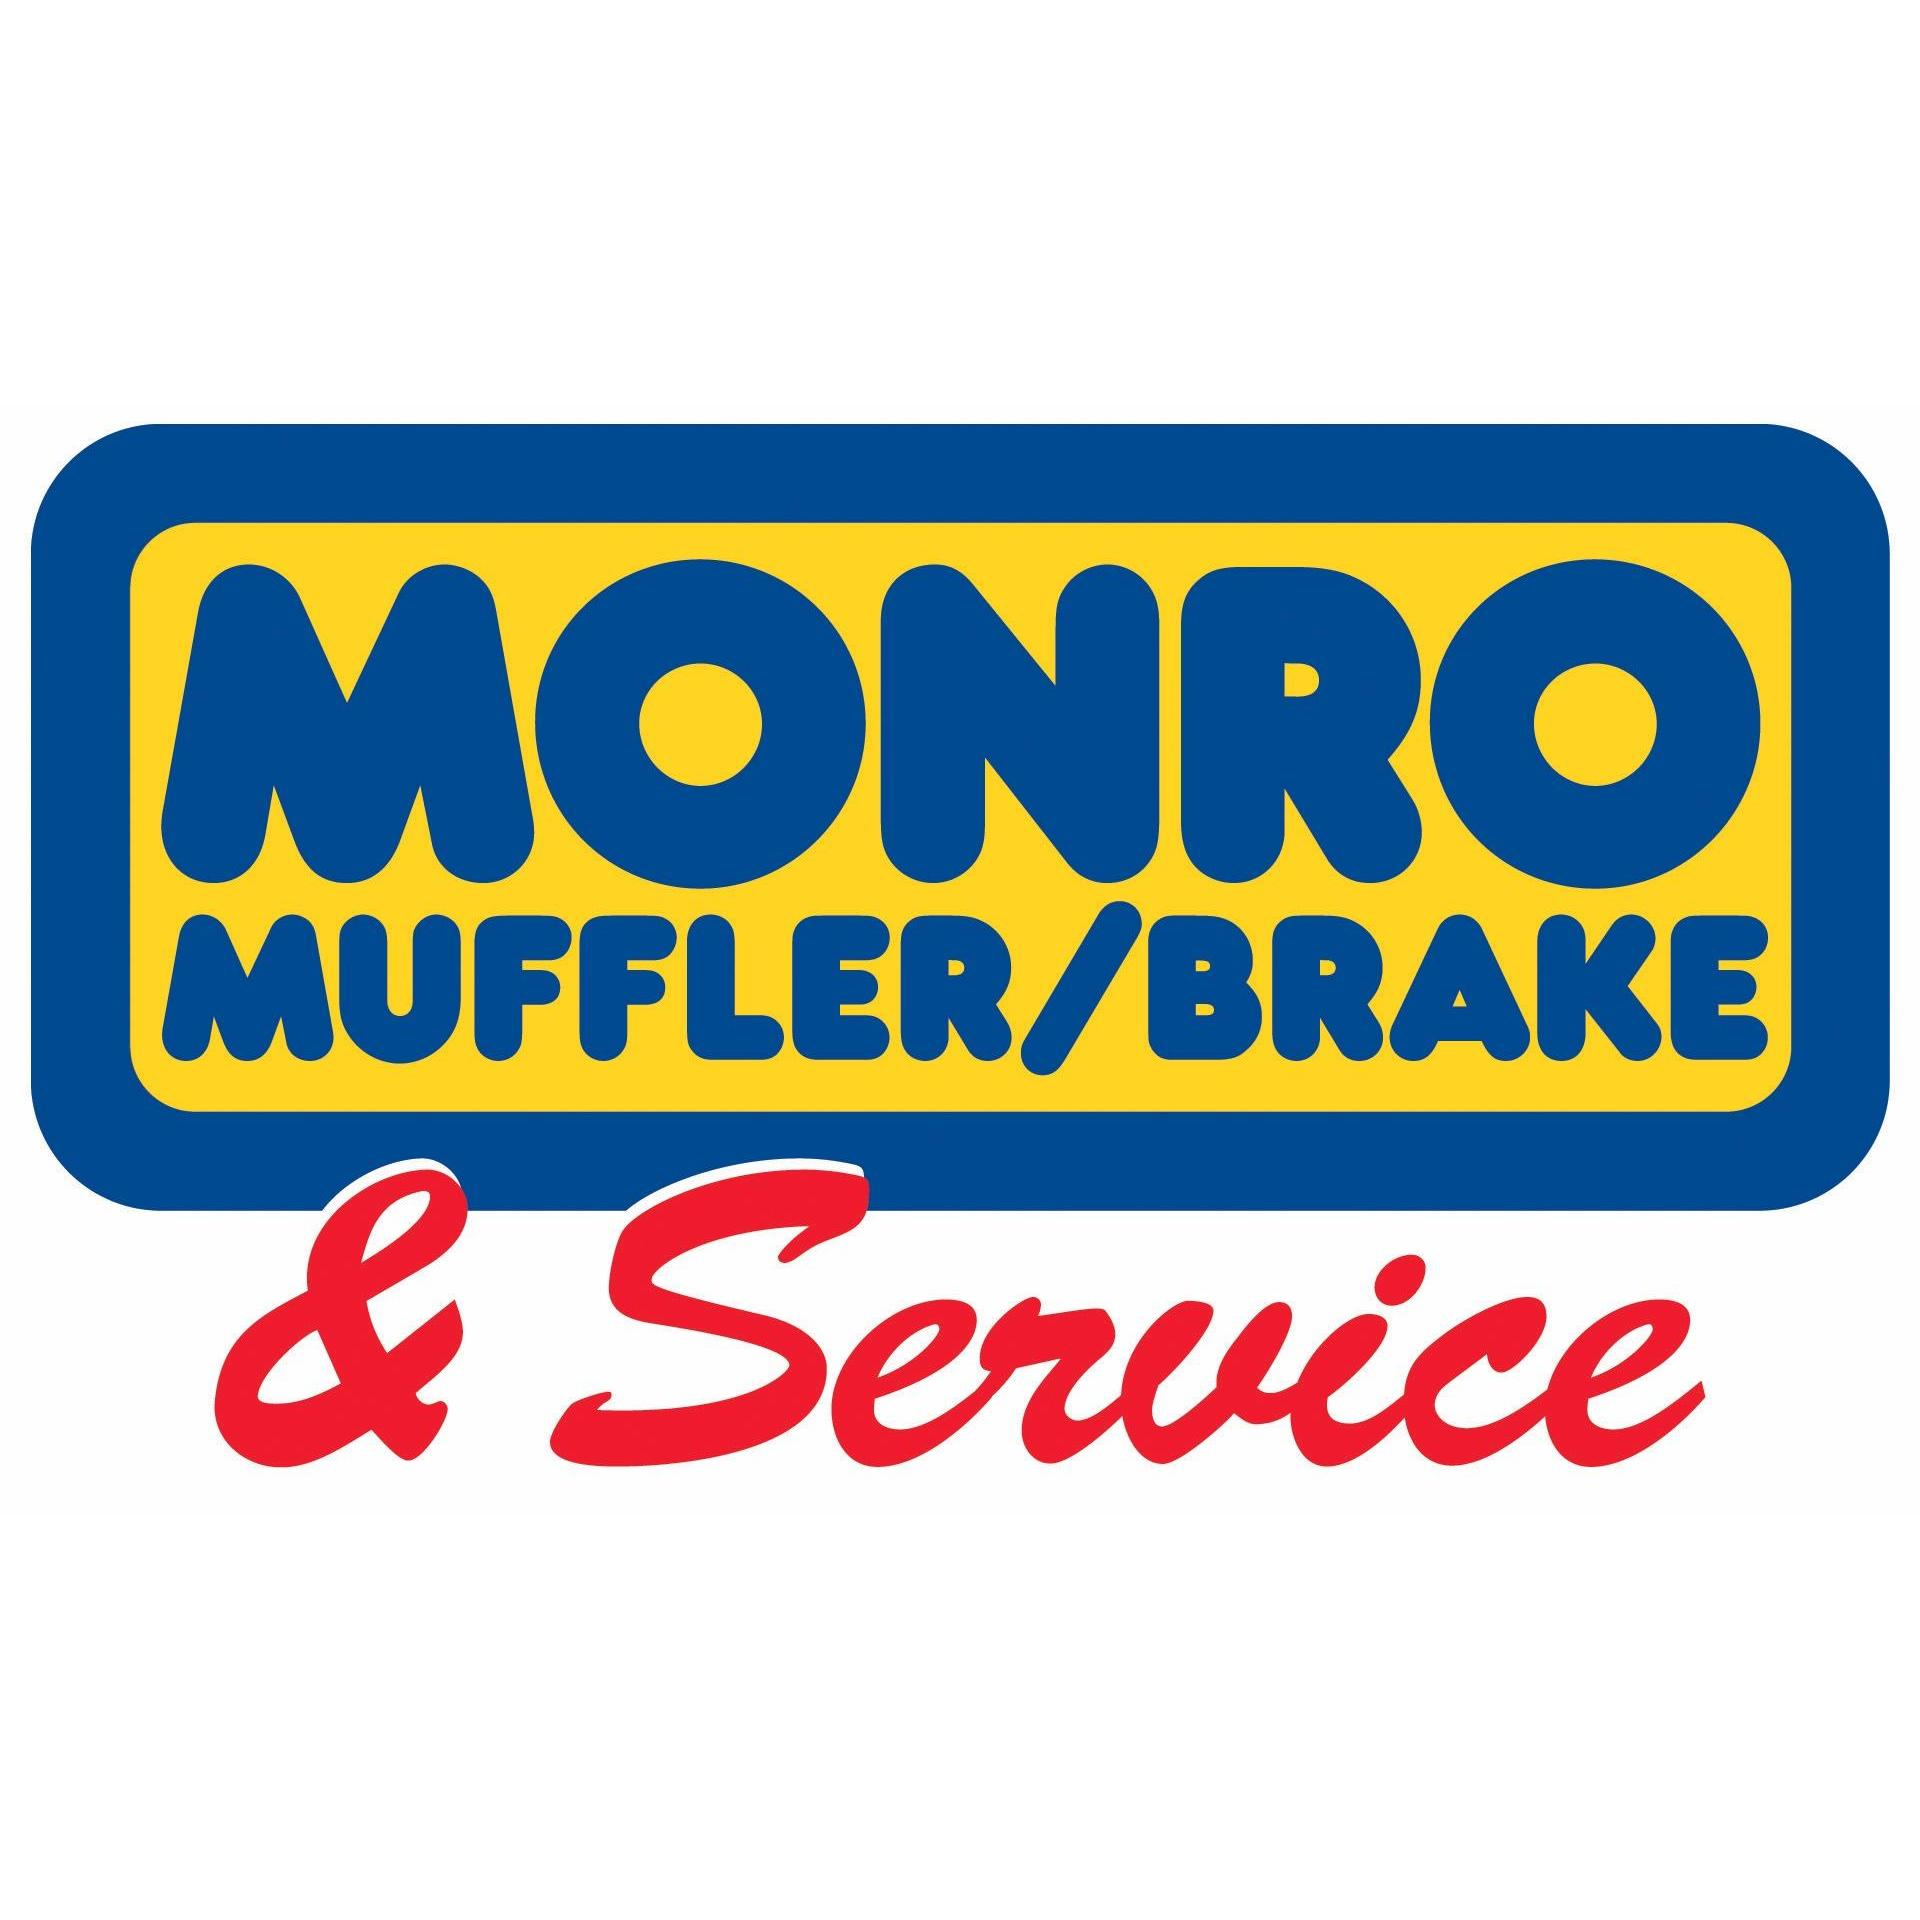 Monro Muffler Brake & Service - Fairlawn, OH - General Auto Repair & Service